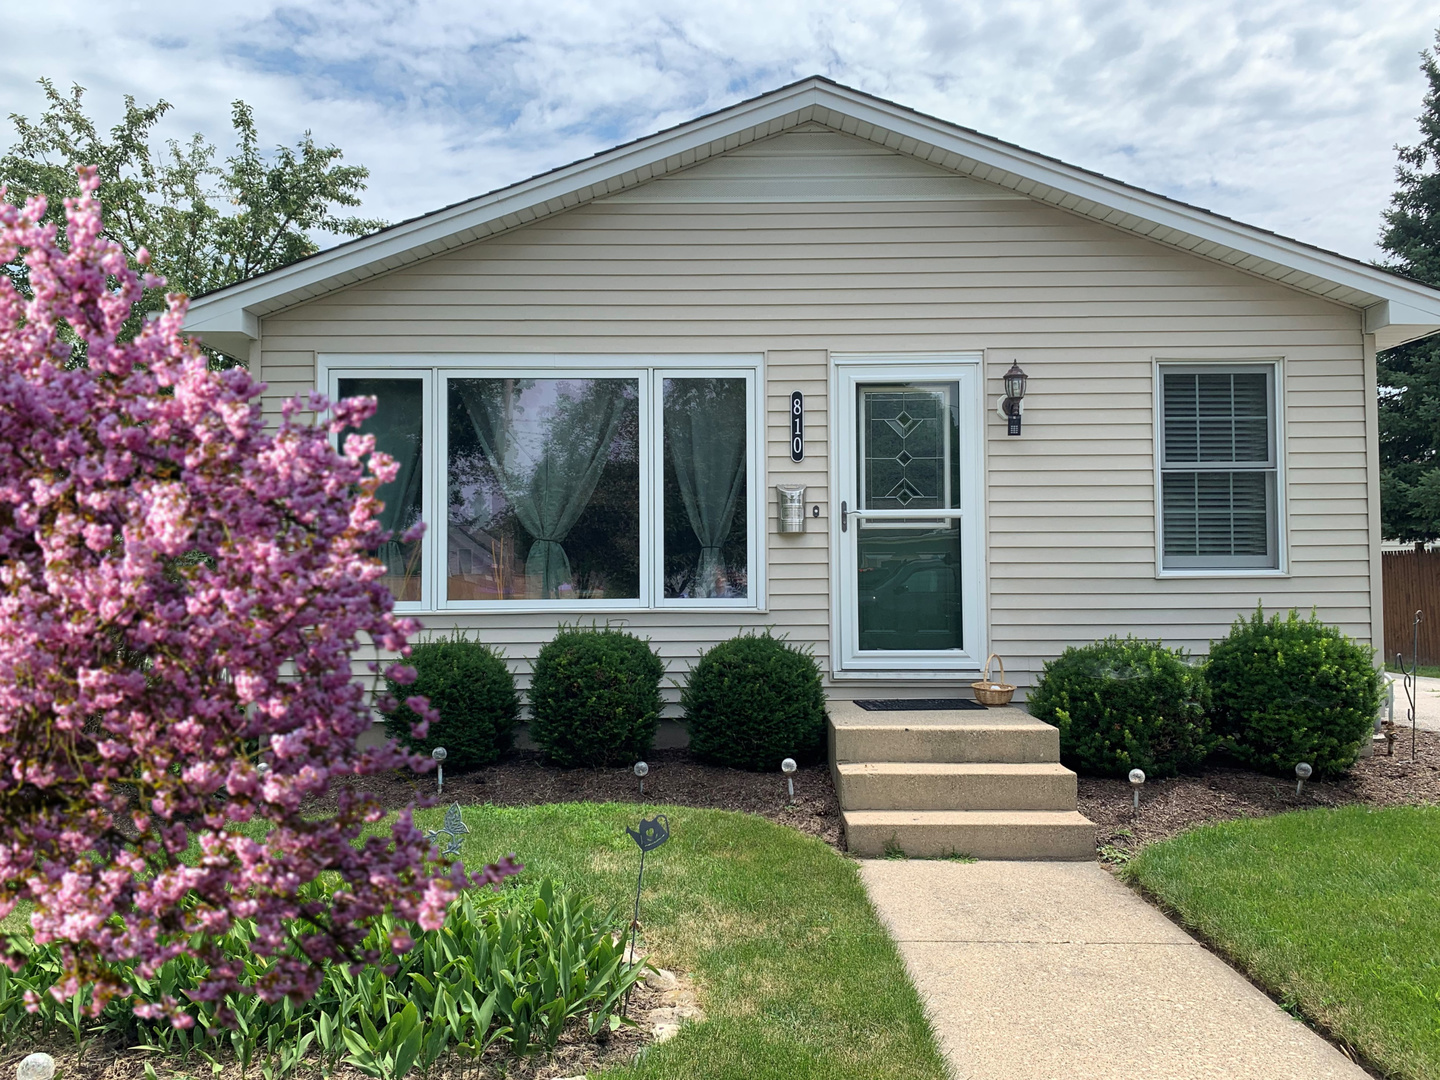 Photo for 810 Jackson Avenue, St. Charles, IL 60174 (MLS # 10482710)